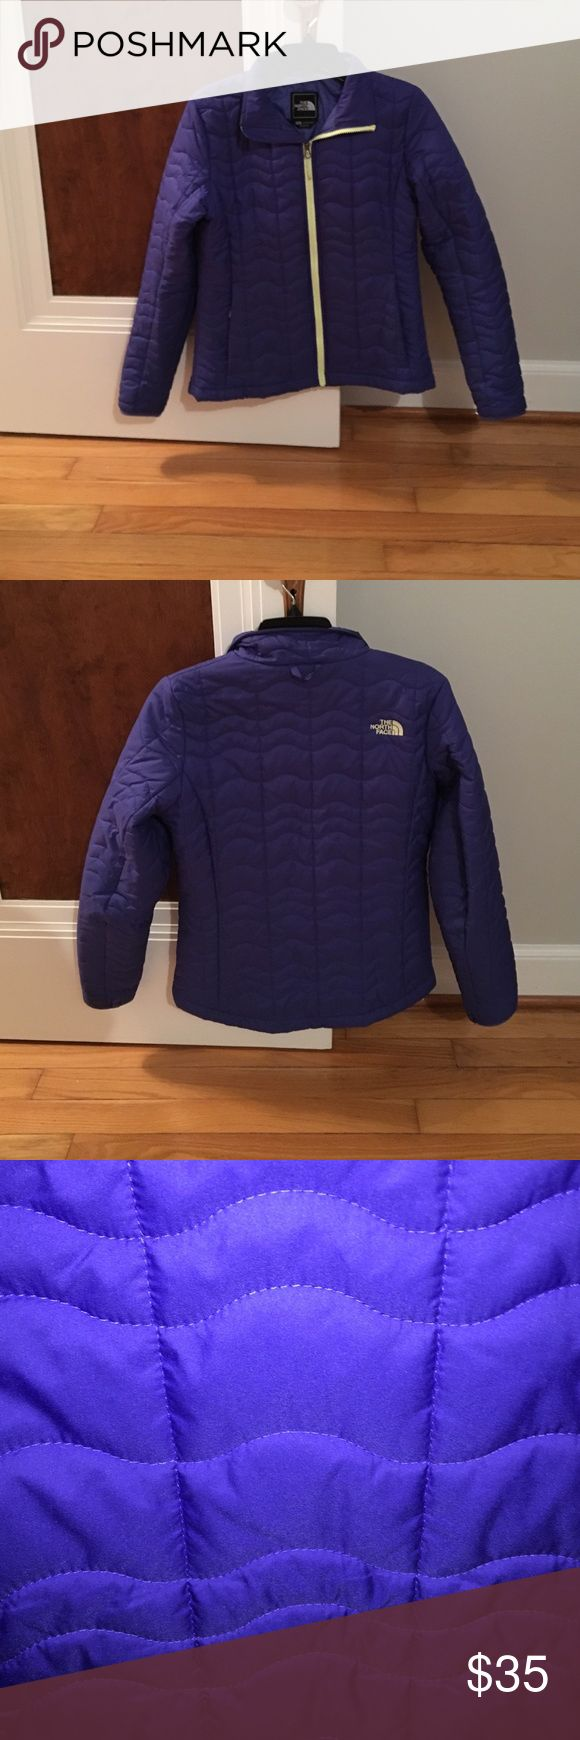 The North Face Ladies Jacket Good condition. Blue puffer with highlighter yellow detailed. Zip up pockets. All zippers work. Very warm. The North Face Jackets & Coats Puffers